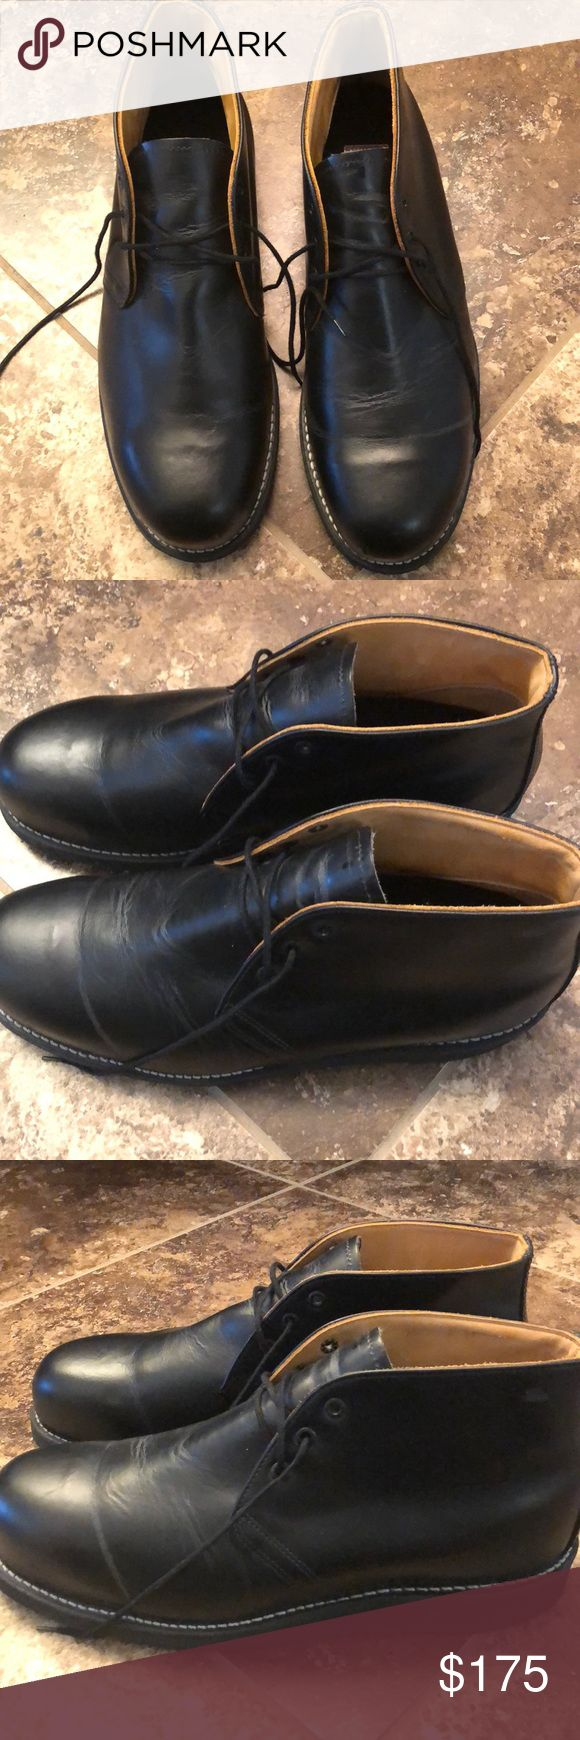 Men's Boots Men's Red Wing Steel Toe Boots. Size 12. Black Leather. Steel Toe. Only worn Once! Red Wing Shoes Shoes Boots